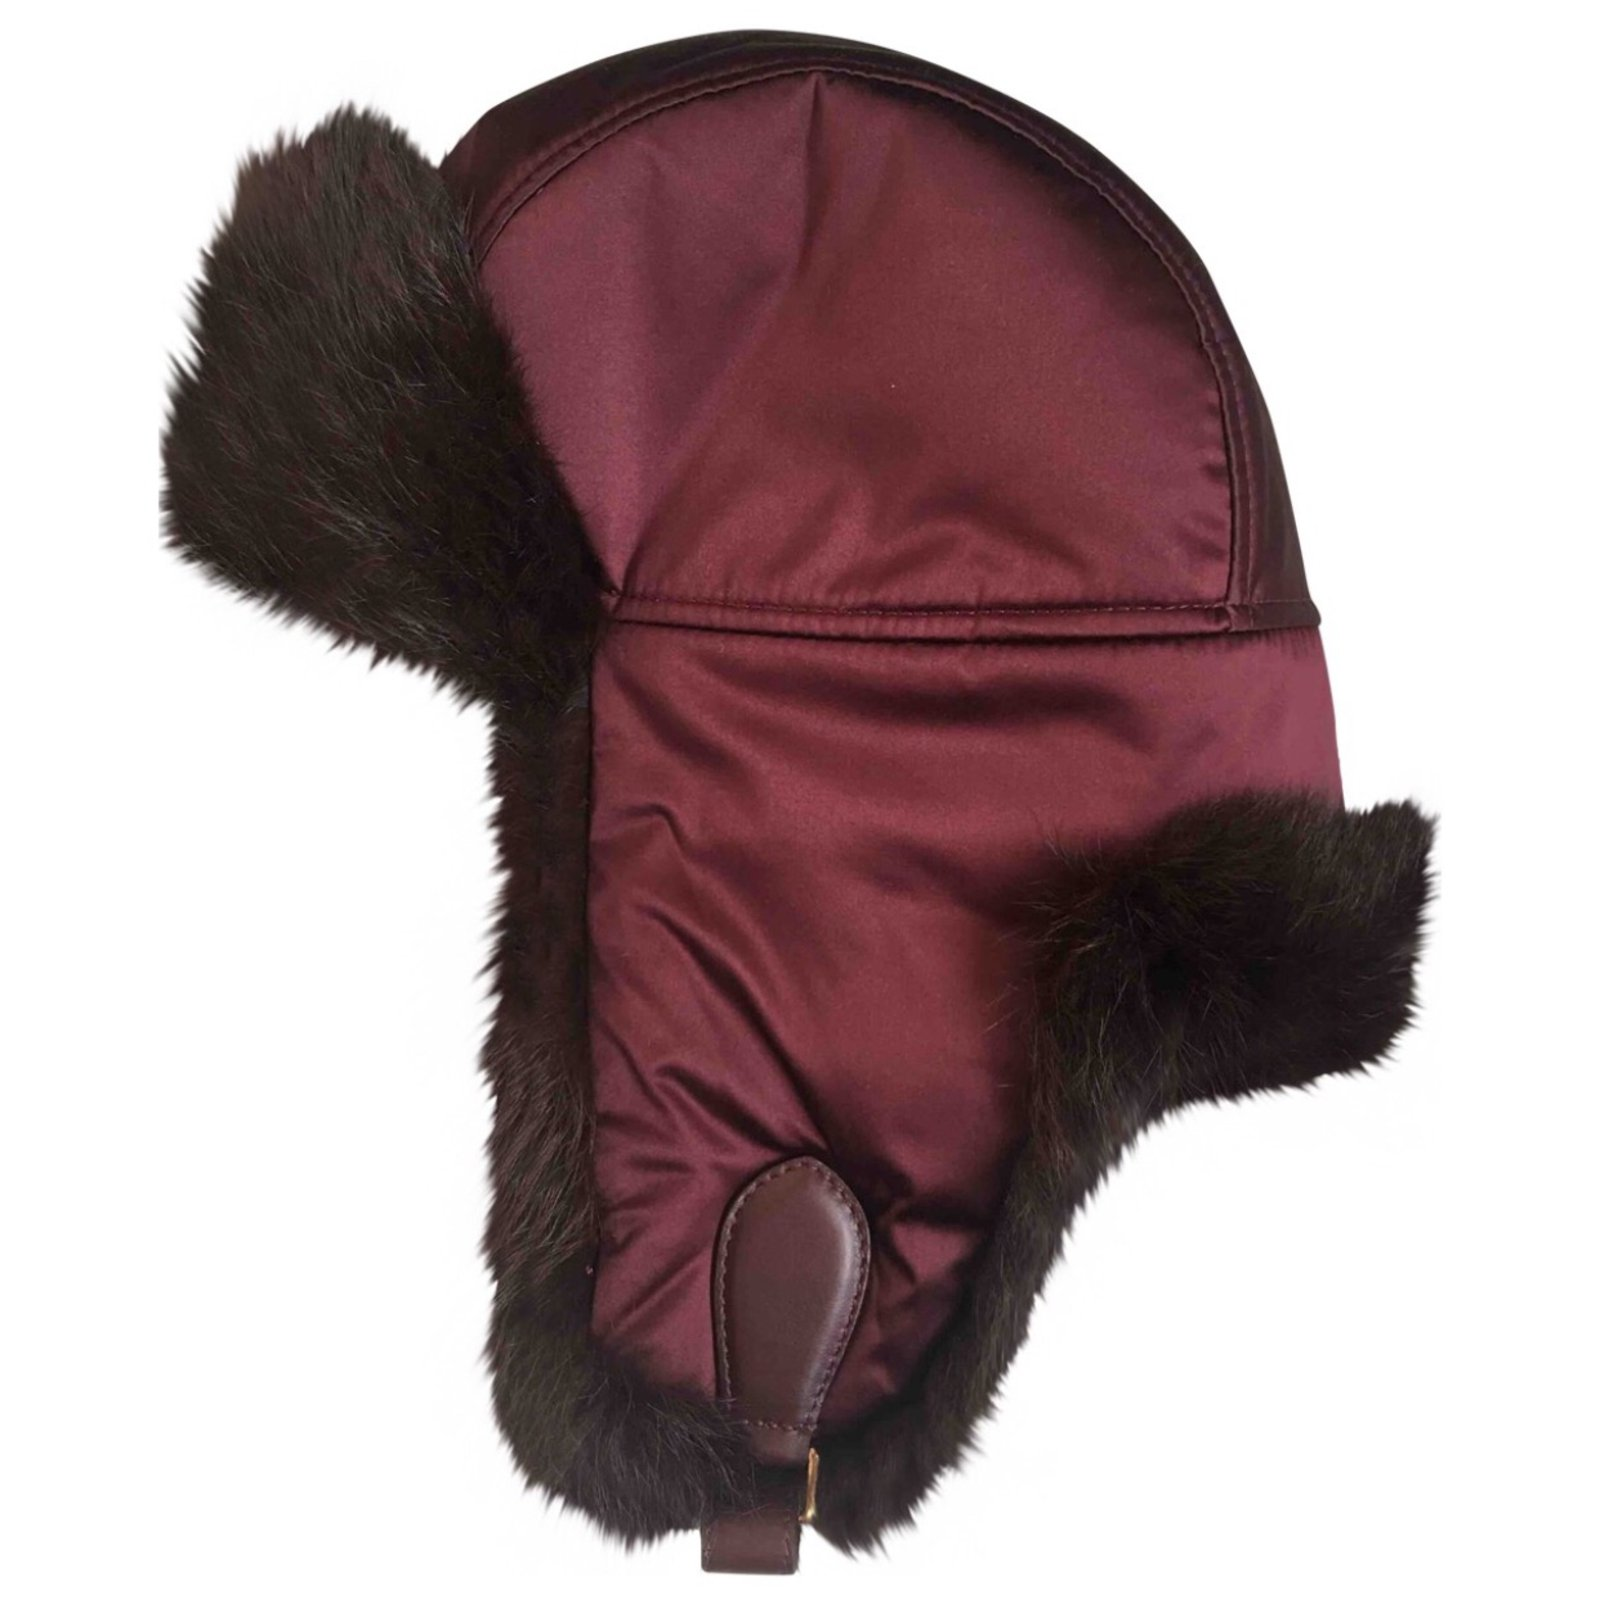 Burberry Hats Hats Fur Dark red ref.60404 - Joli Closet 49f6e693e4d